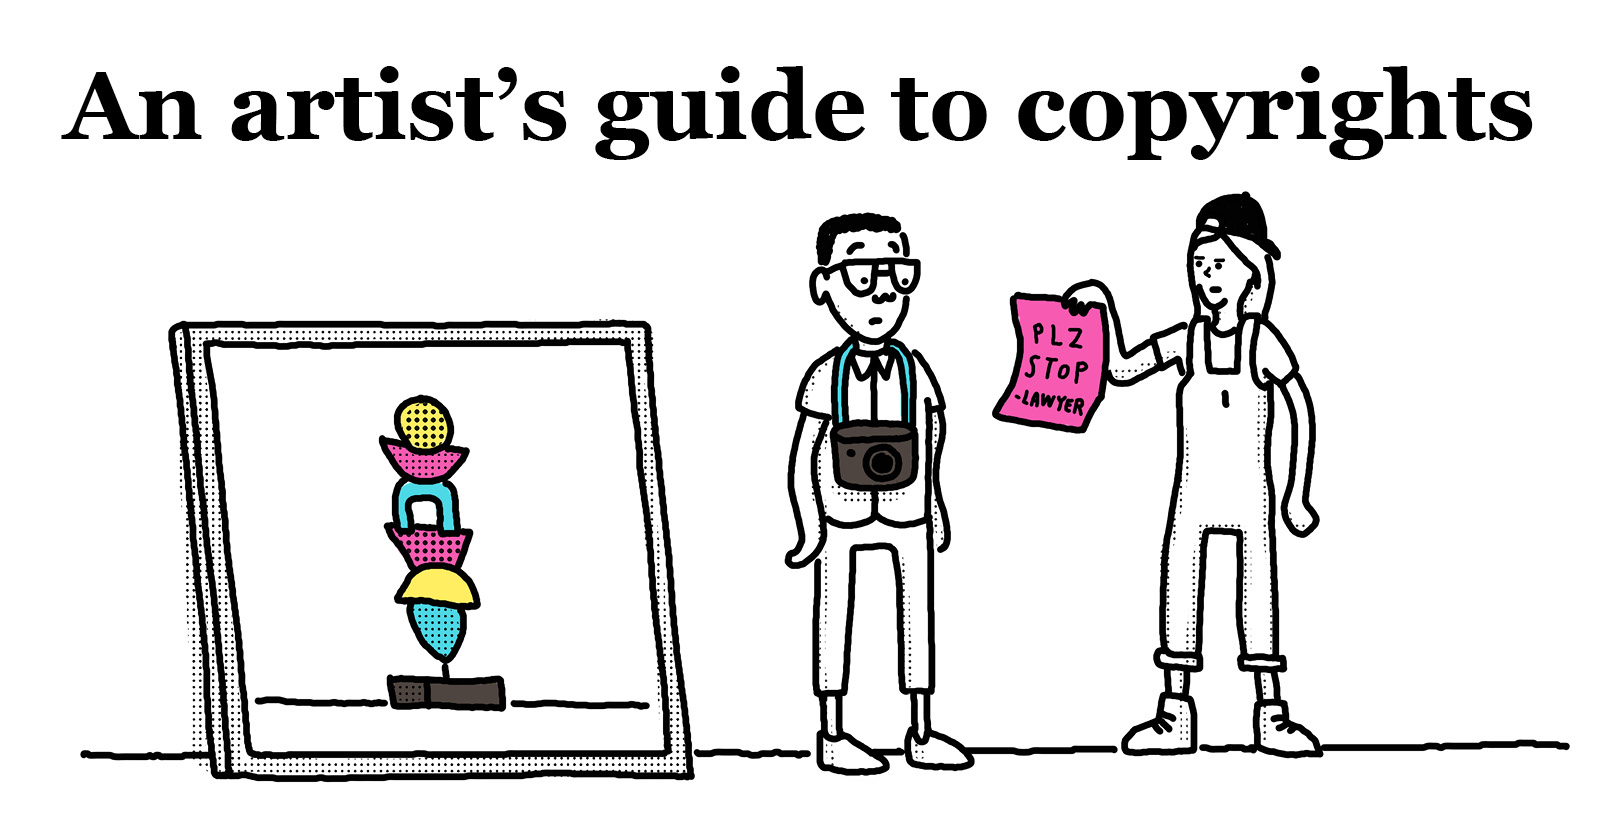 An artist's guide to copyrights